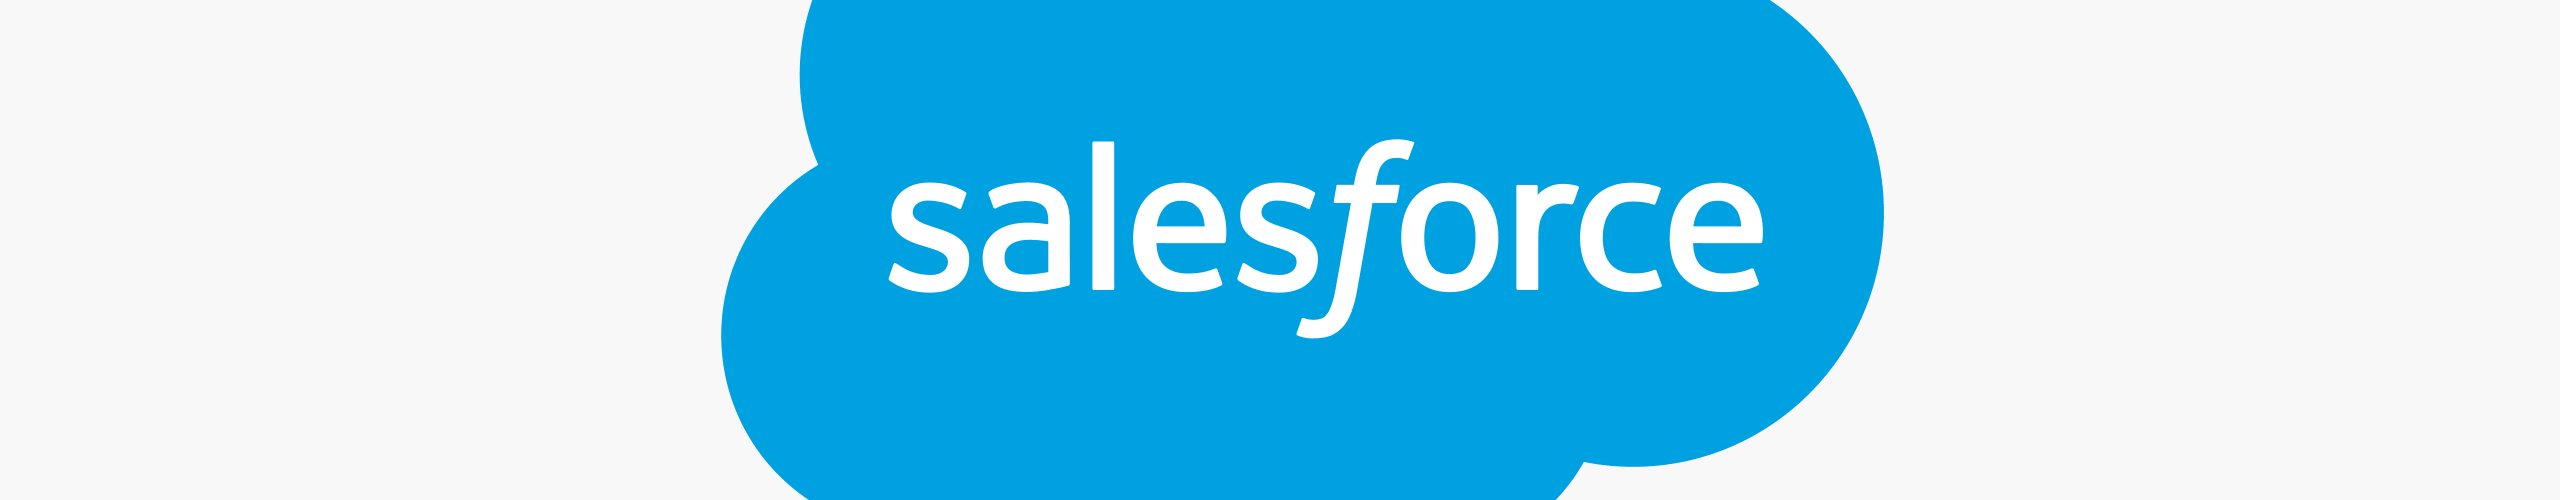 Salesforce Image 1